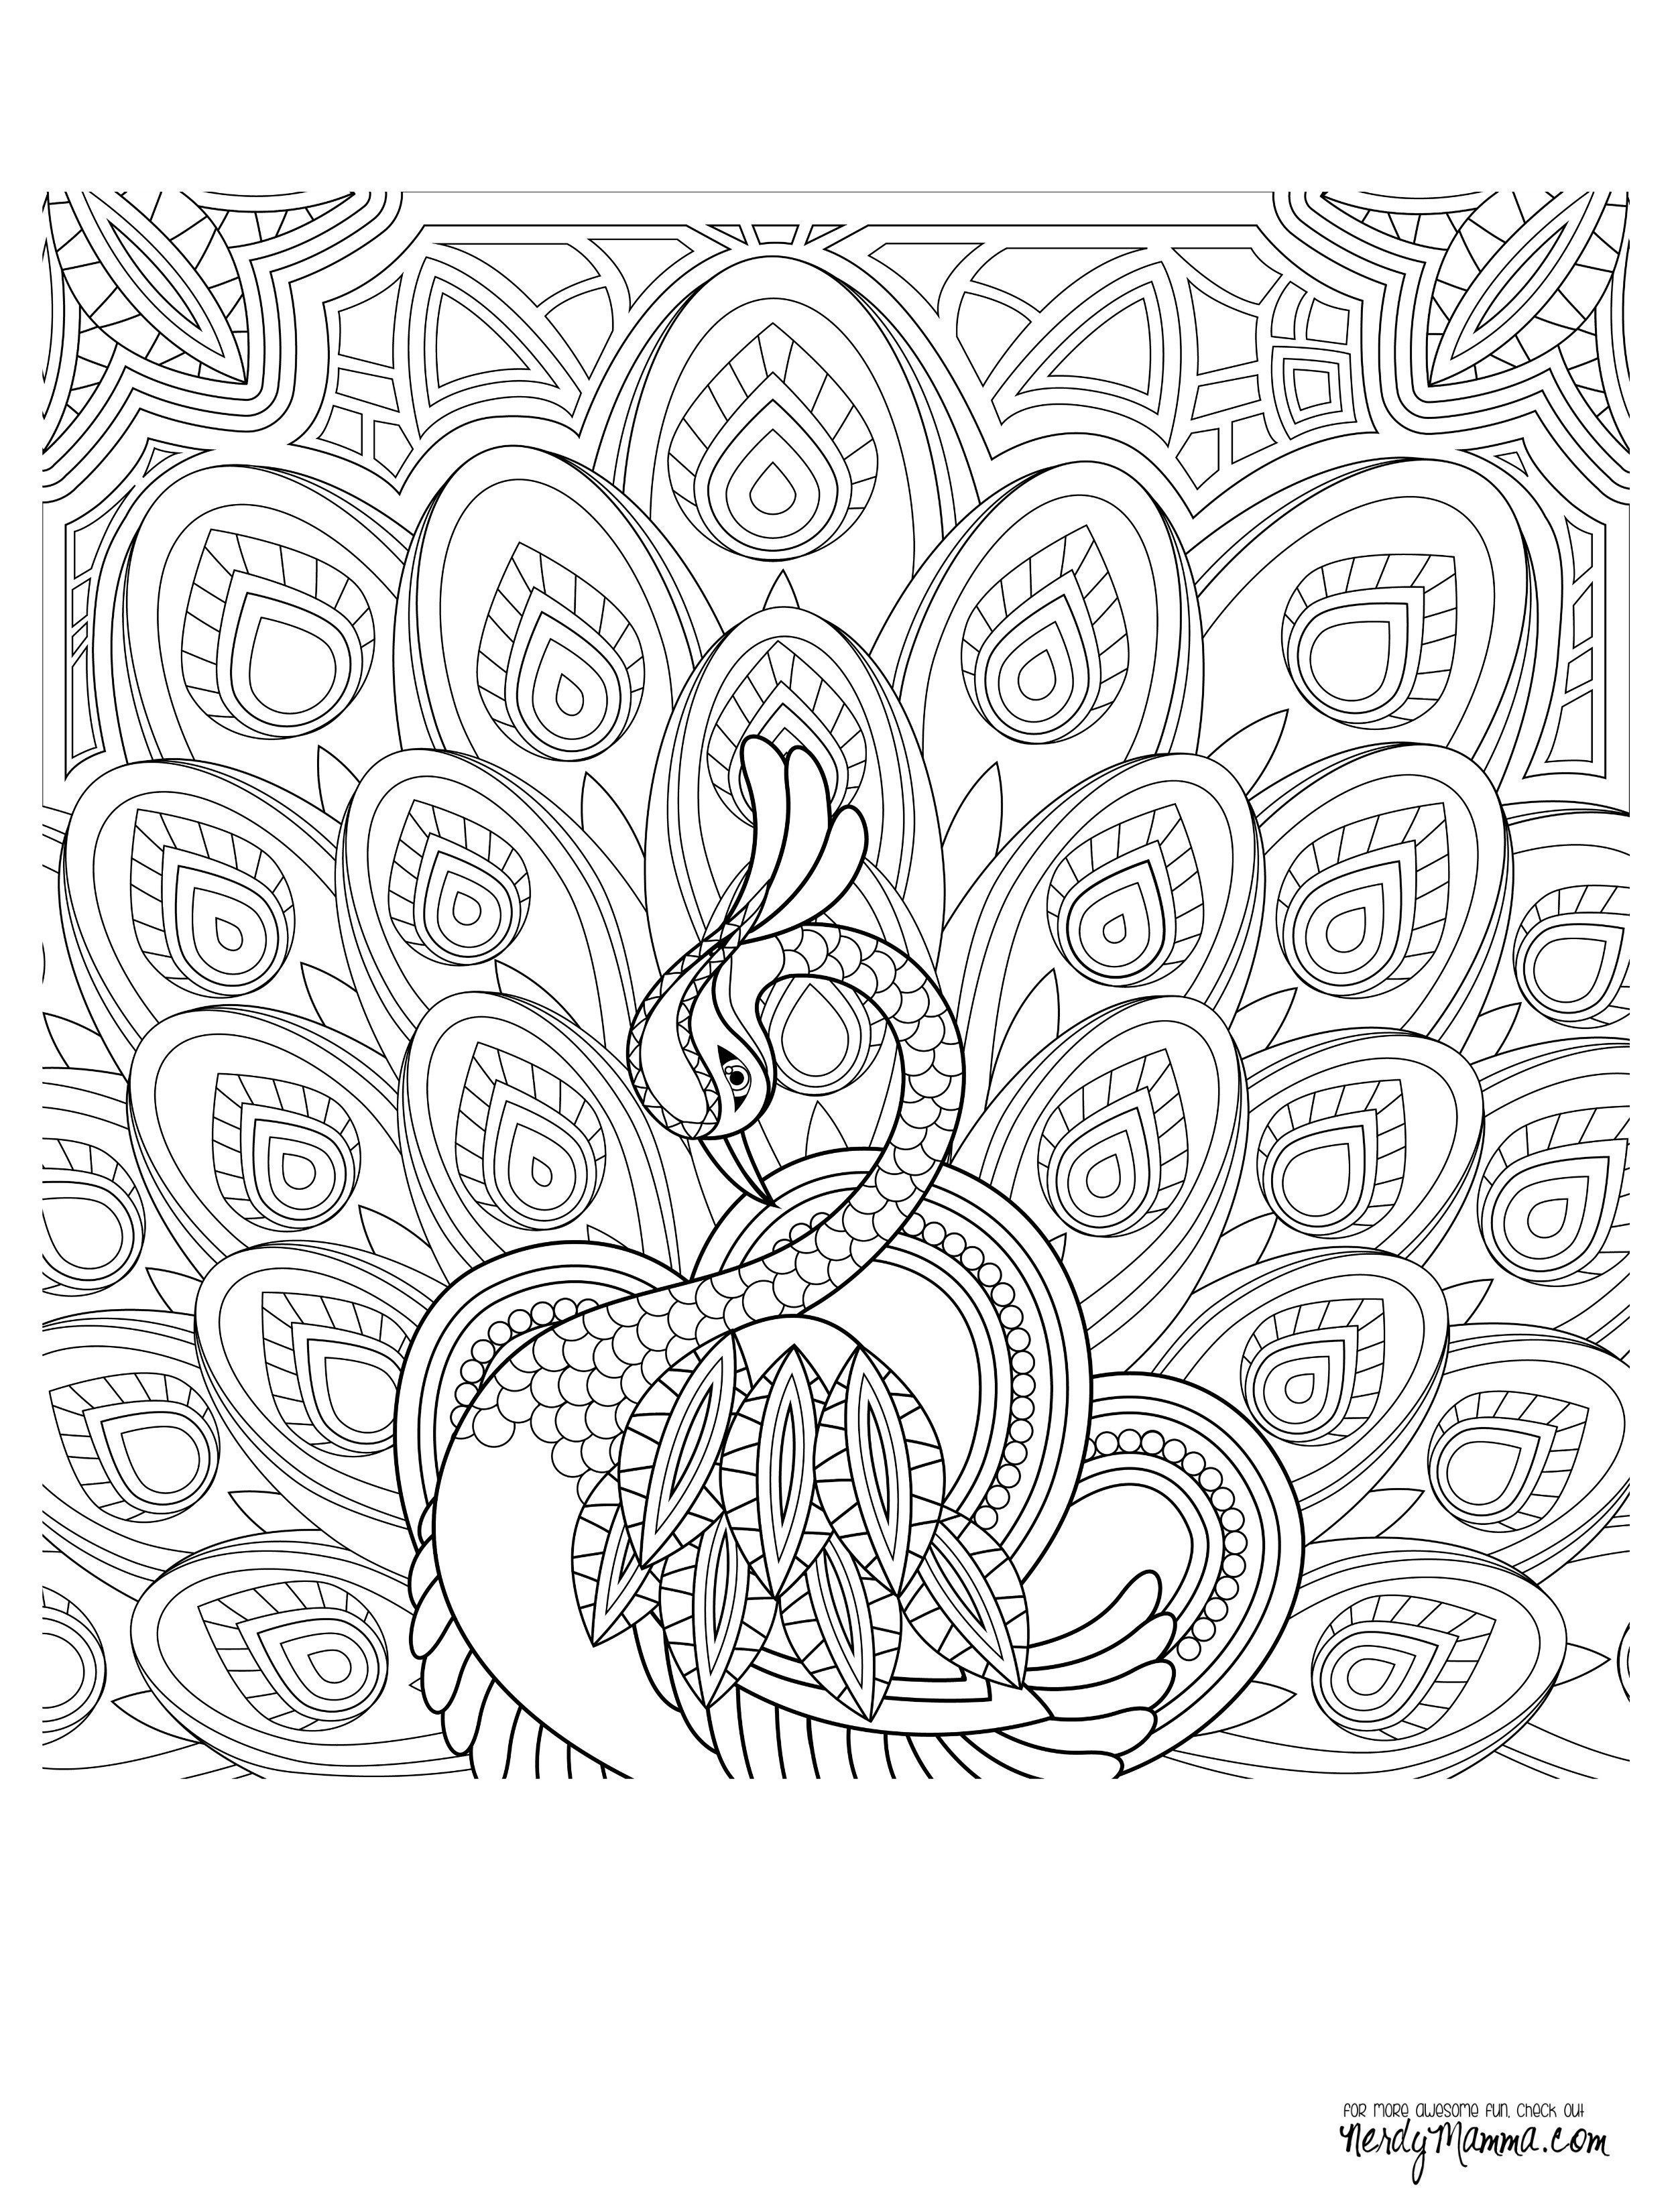 Llama Coloring Pages  to Print 3l - Free For kids